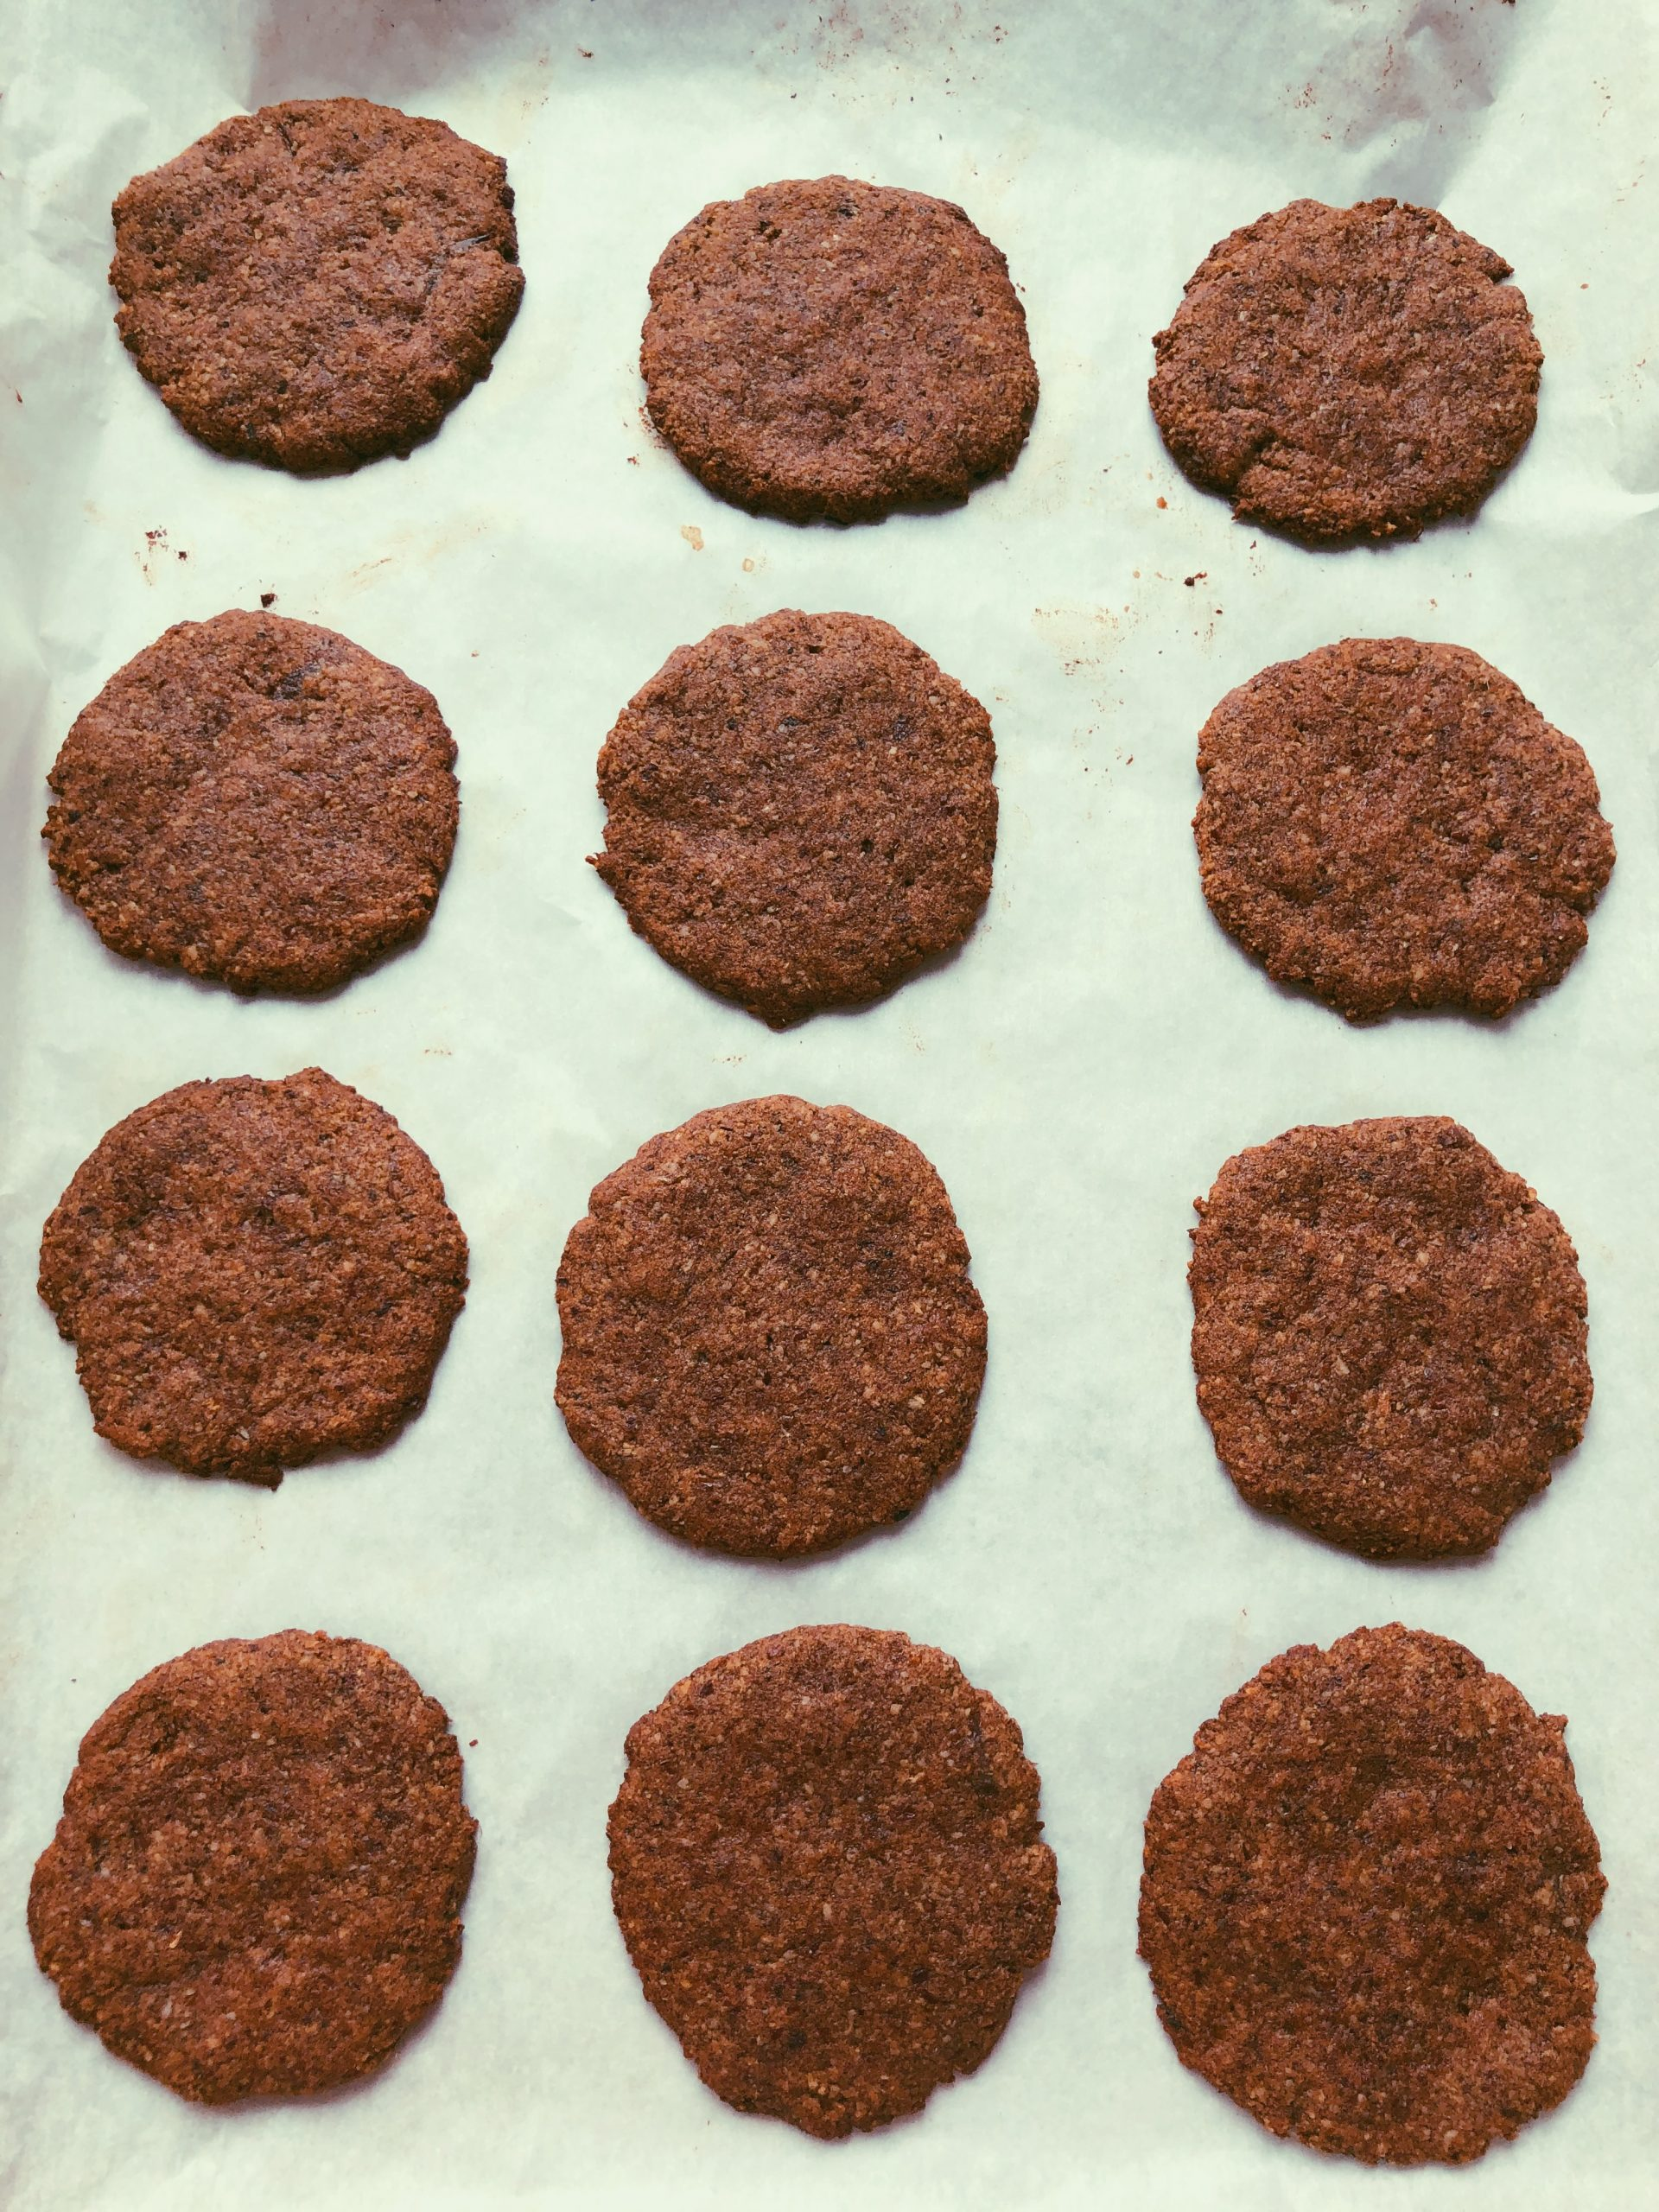 grain free scd diet chocolate cookies with icing